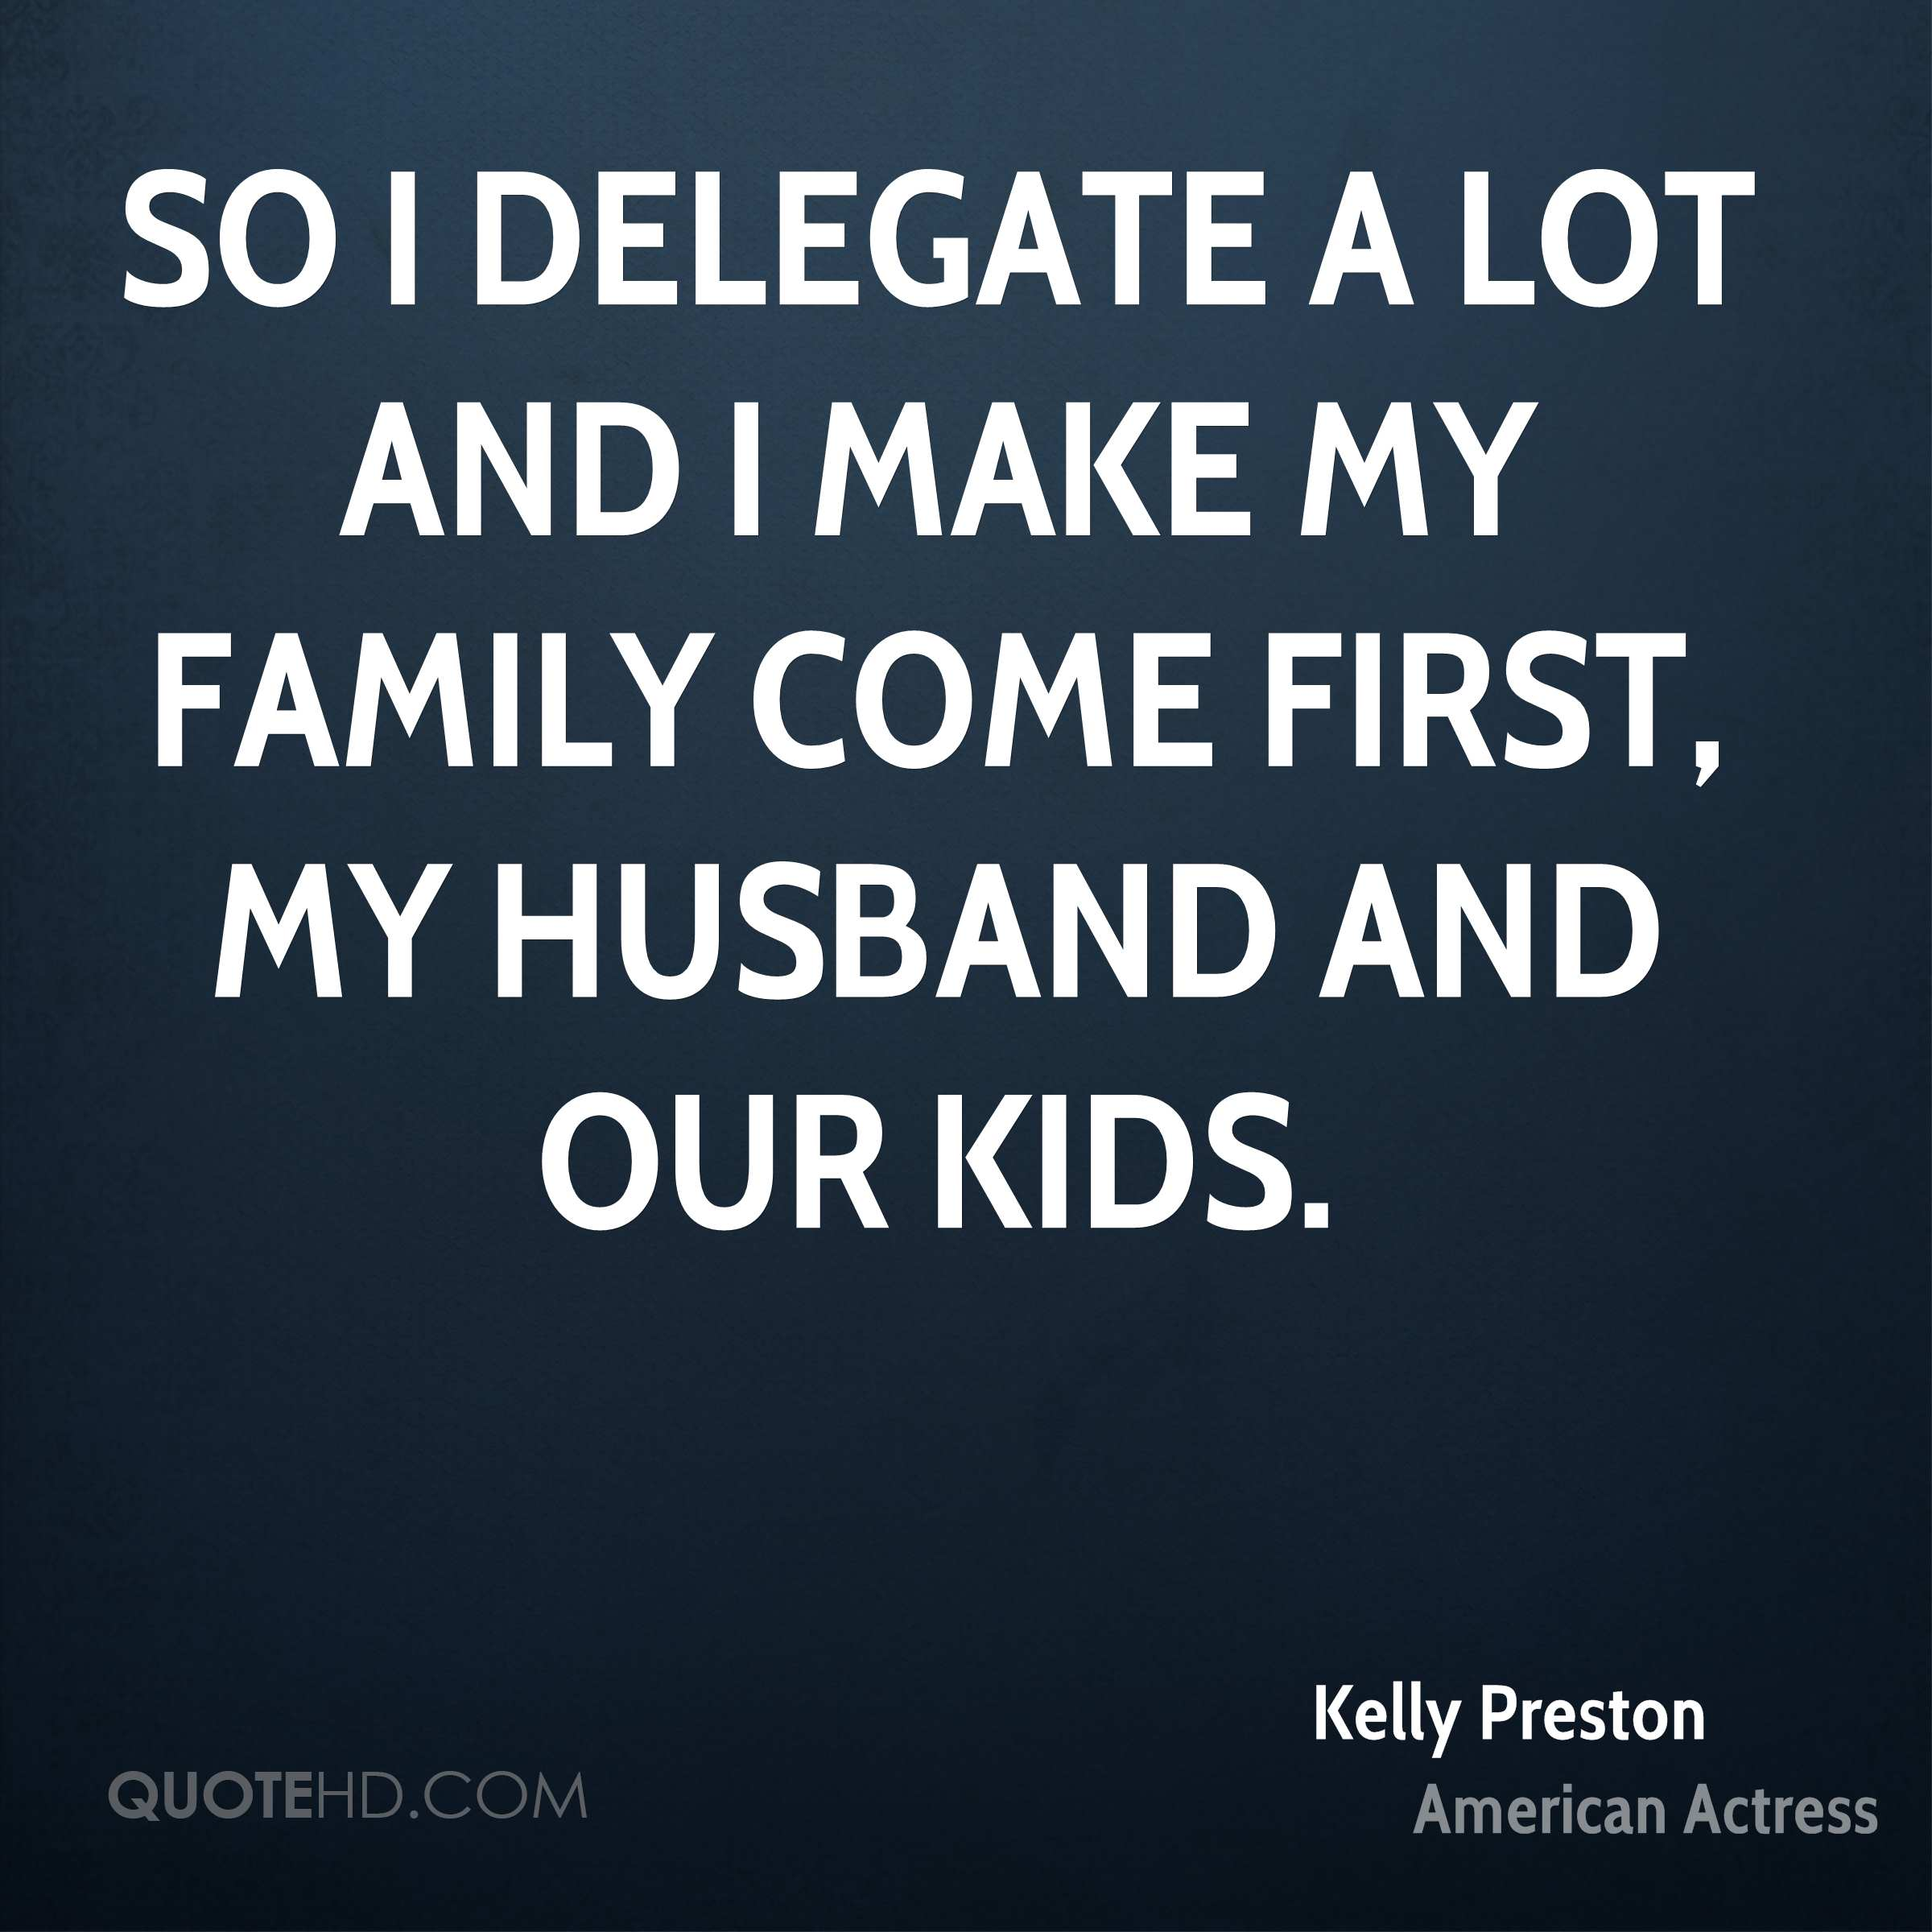 Kelly Preston Husband Quotes | QuoteHD